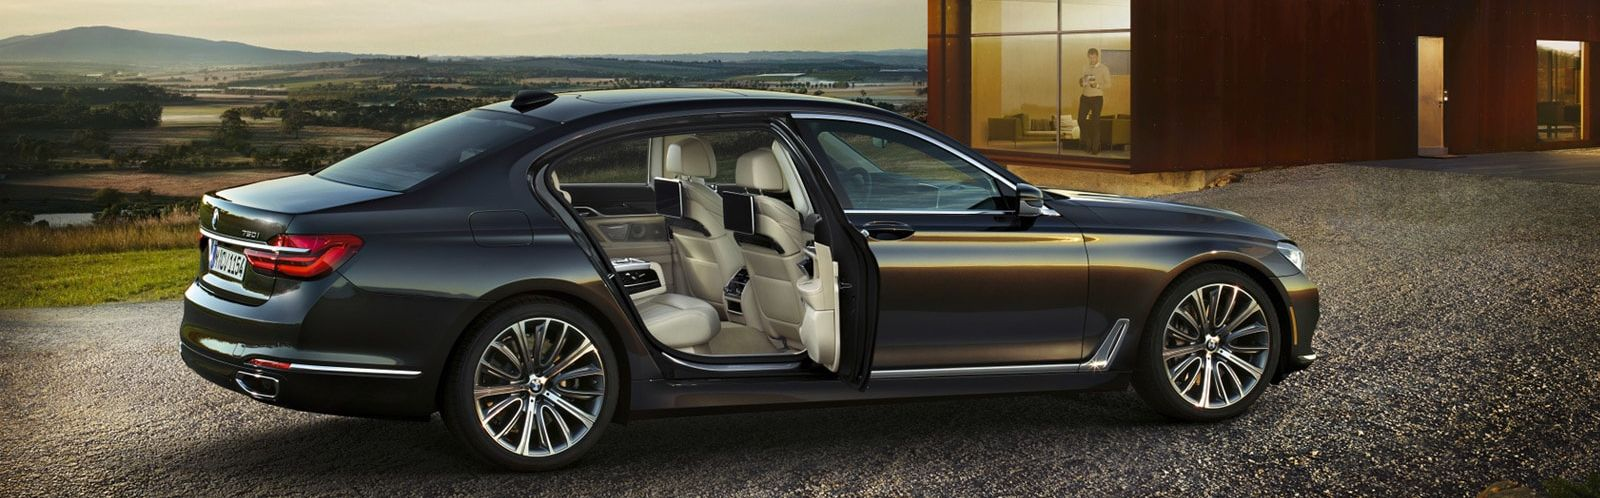 2019 BMW 7 Series for Sale near Crown Point, IN